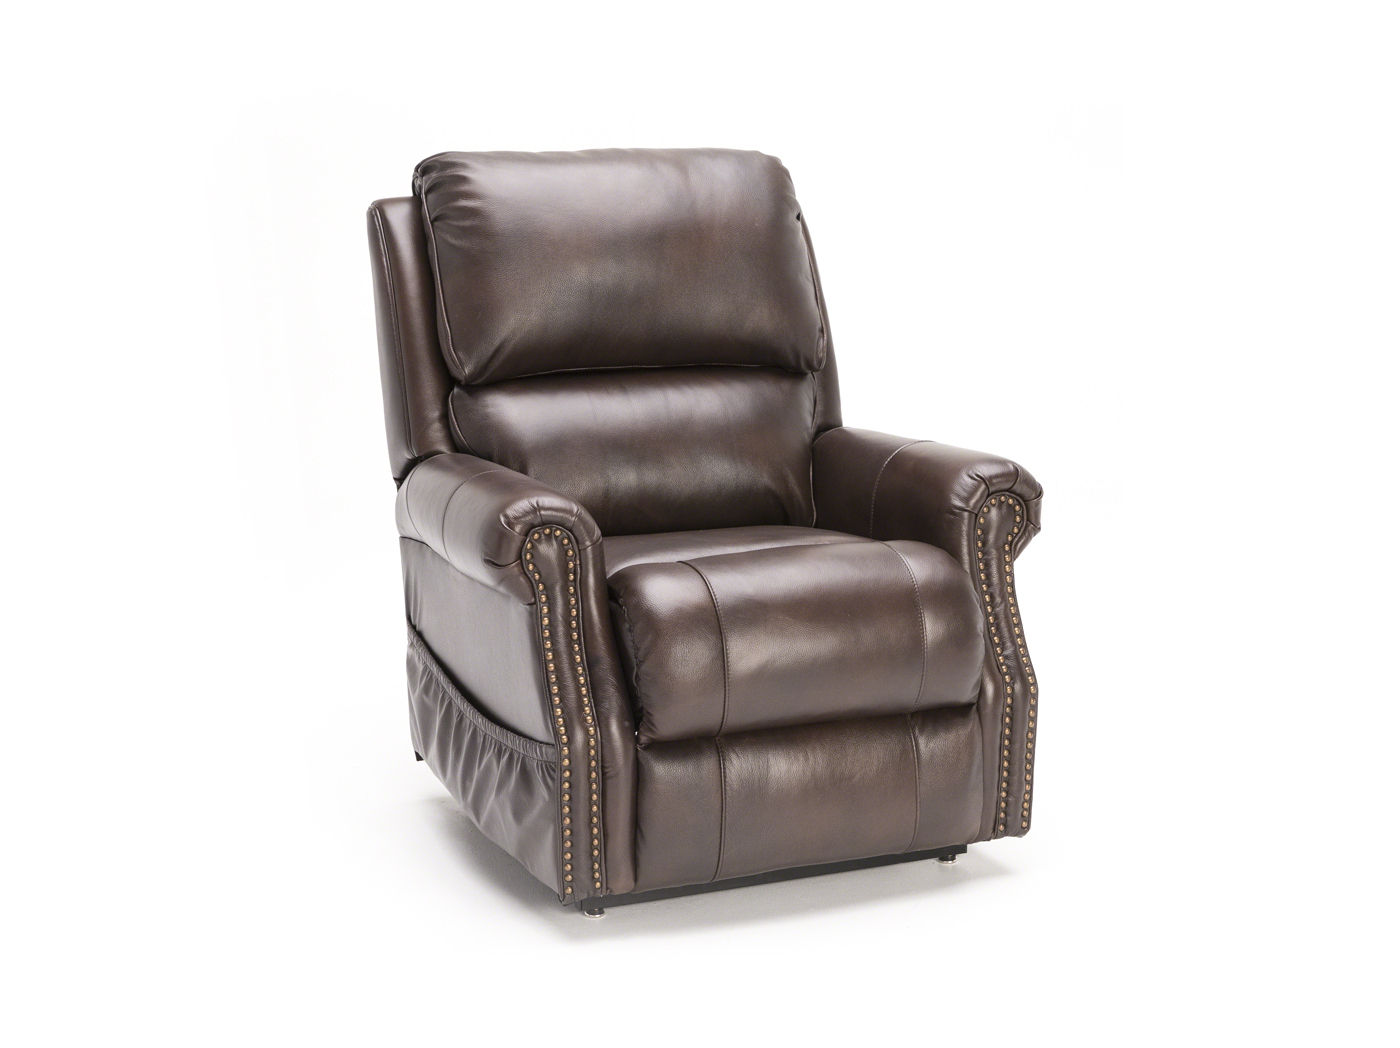 Living Room – Chairs | Steinhafels Throughout Umber Grey Swivel Accent Chairs (Image 14 of 20)